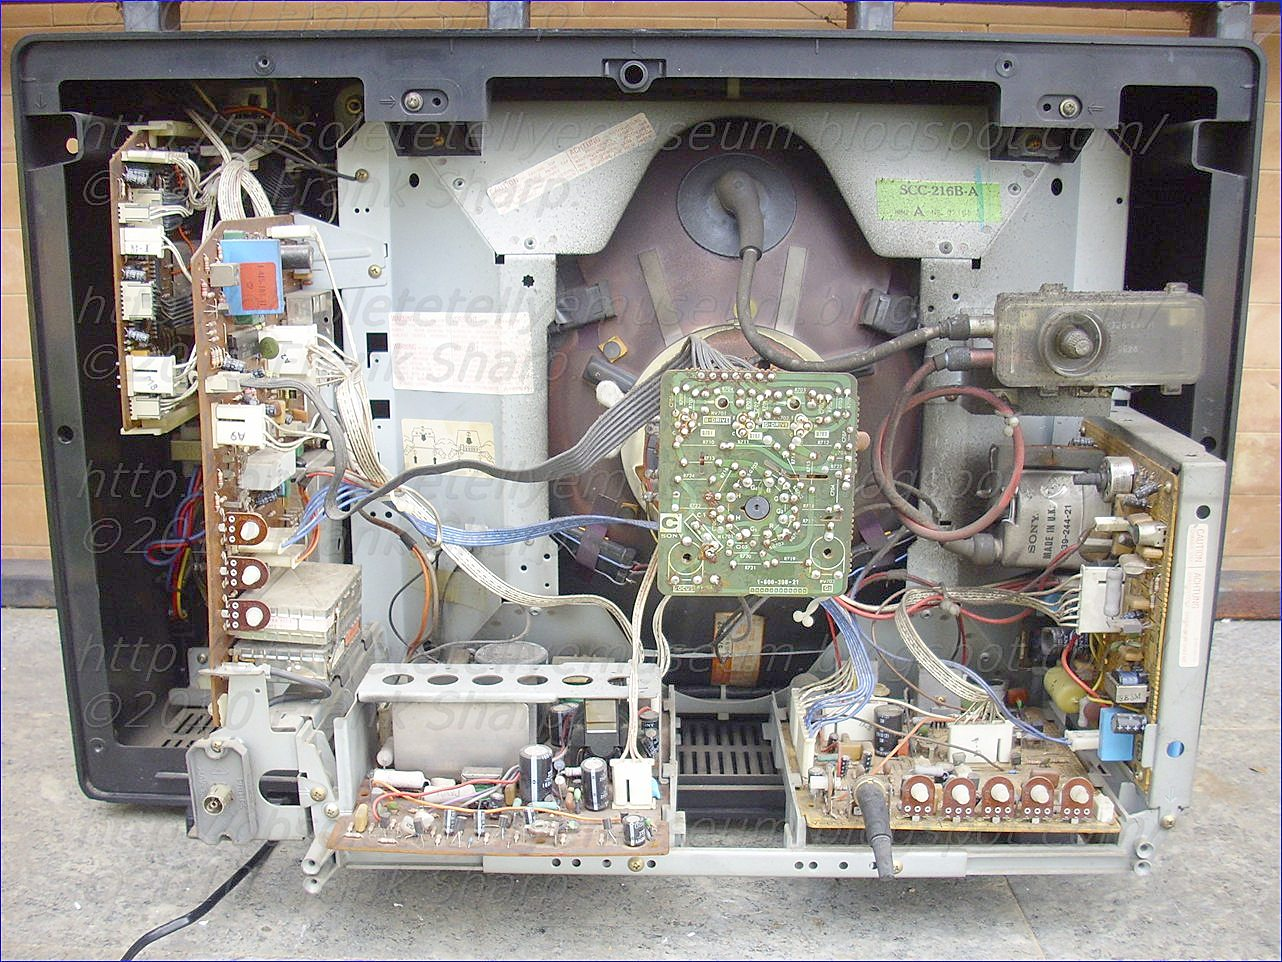 Obsolete Technology Tellye Sony Kv 2204et Chassis Scc 216b A High Voltage Dc Power Supply With Neat Trick For Switching Polarity Upon Issuance Of The Memory Instruction Instantaneous Tuning Is Stored In Circuit 11 And Subsequently Supplied To Tuner 2